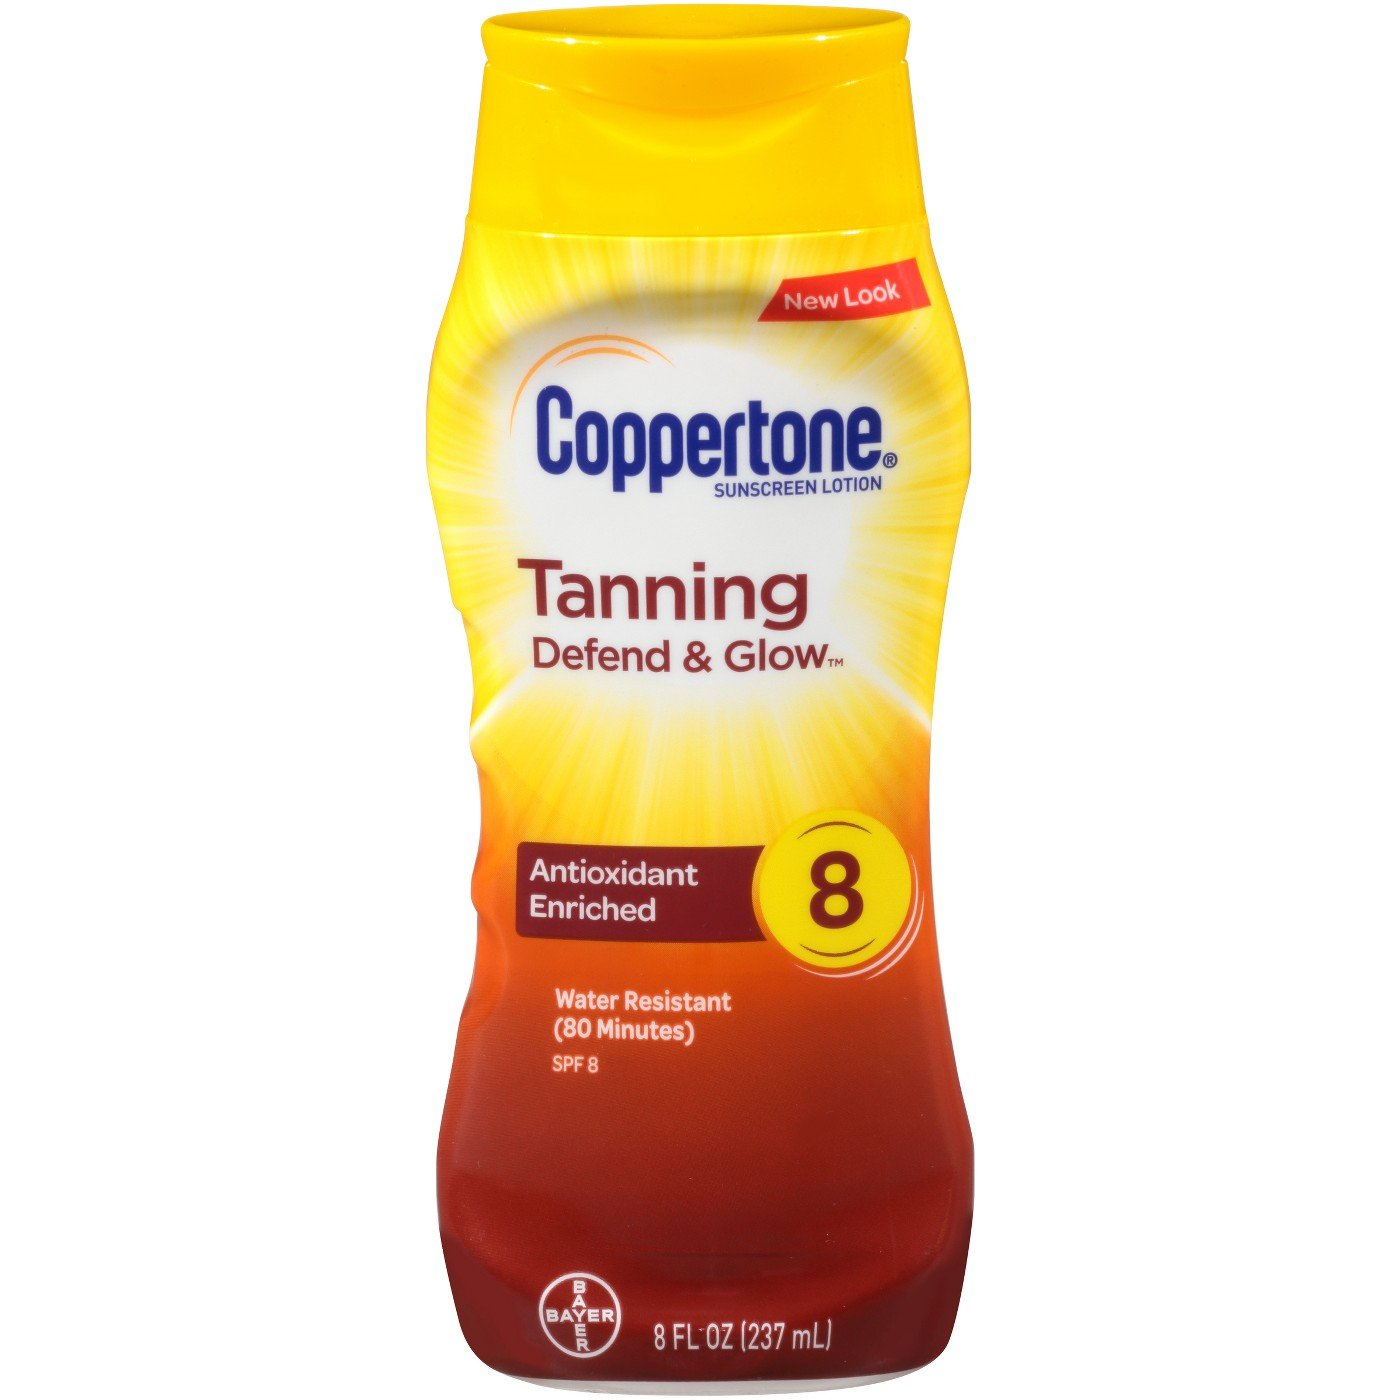 Coppertone Tanning Lotion SPF 8 Sunscreen-8 oz, 2 pack No Model